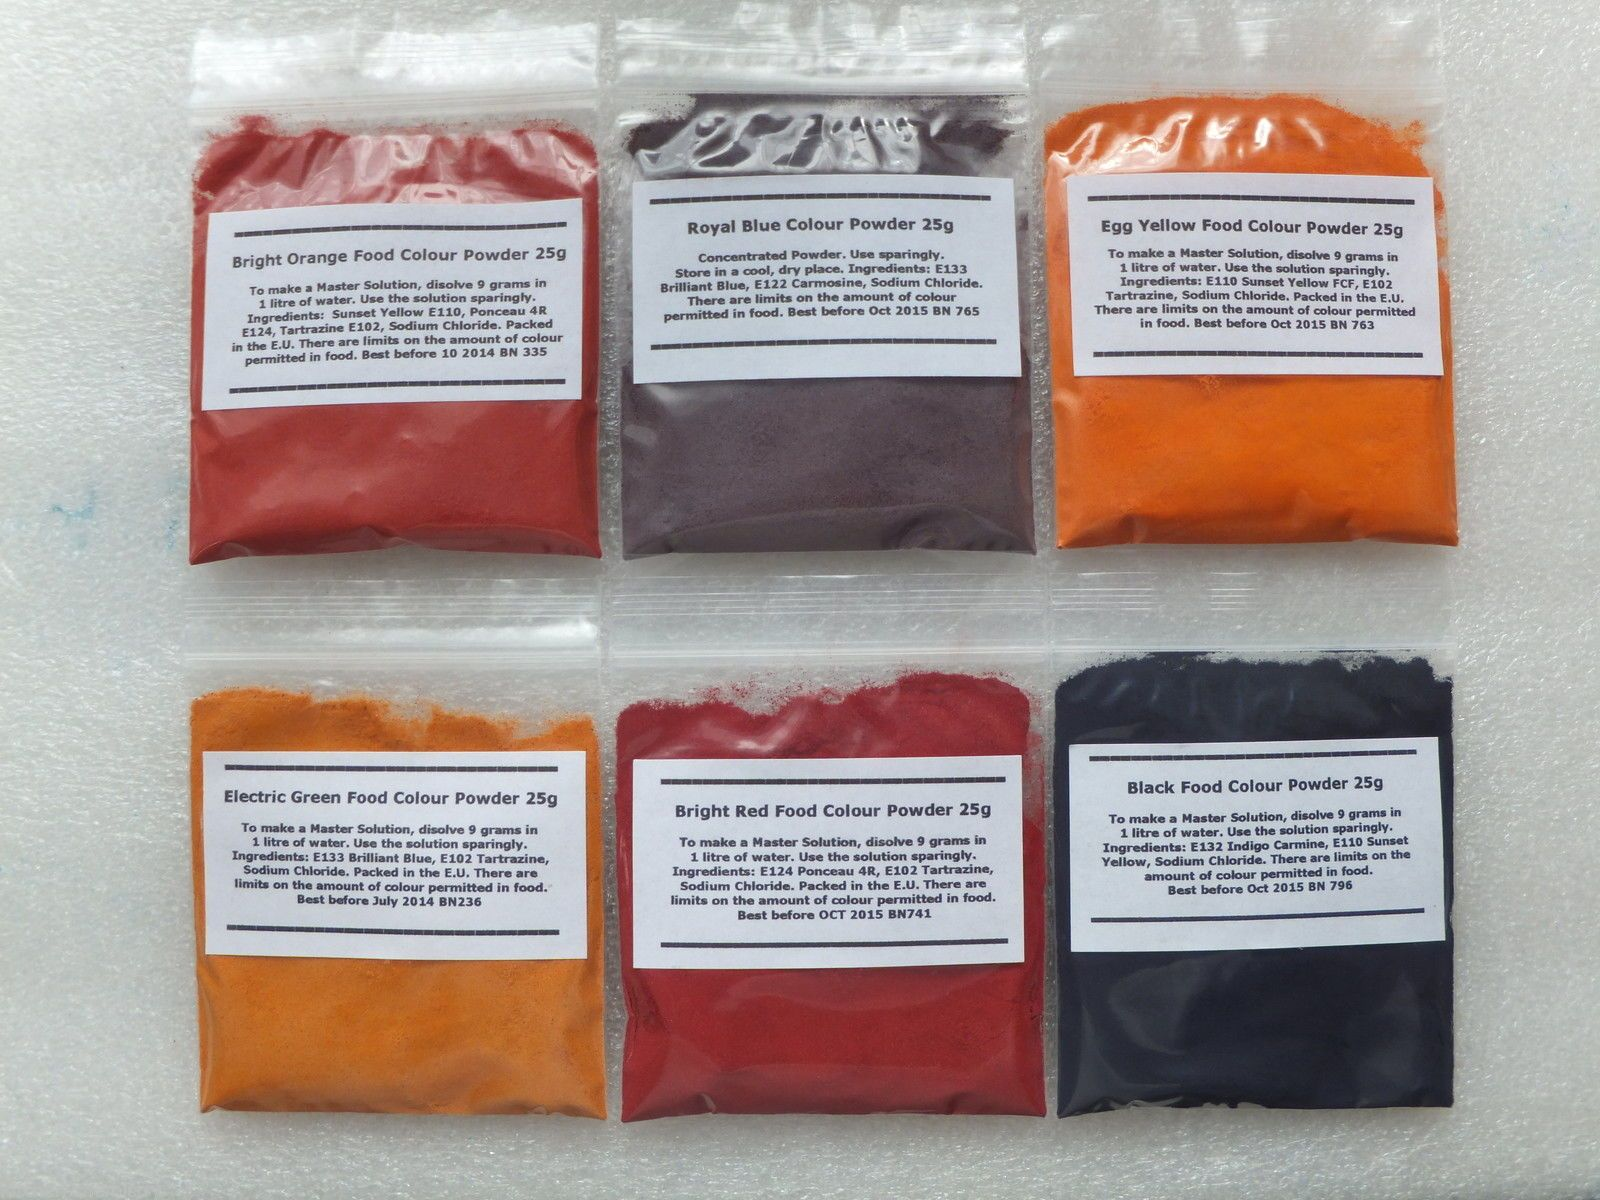 Food Colouring Powder Concentrated 25g All Colours And Black Water Soluble Color Check More At Https Lazidoshop Com Product Food Colouring Powder Concentrated